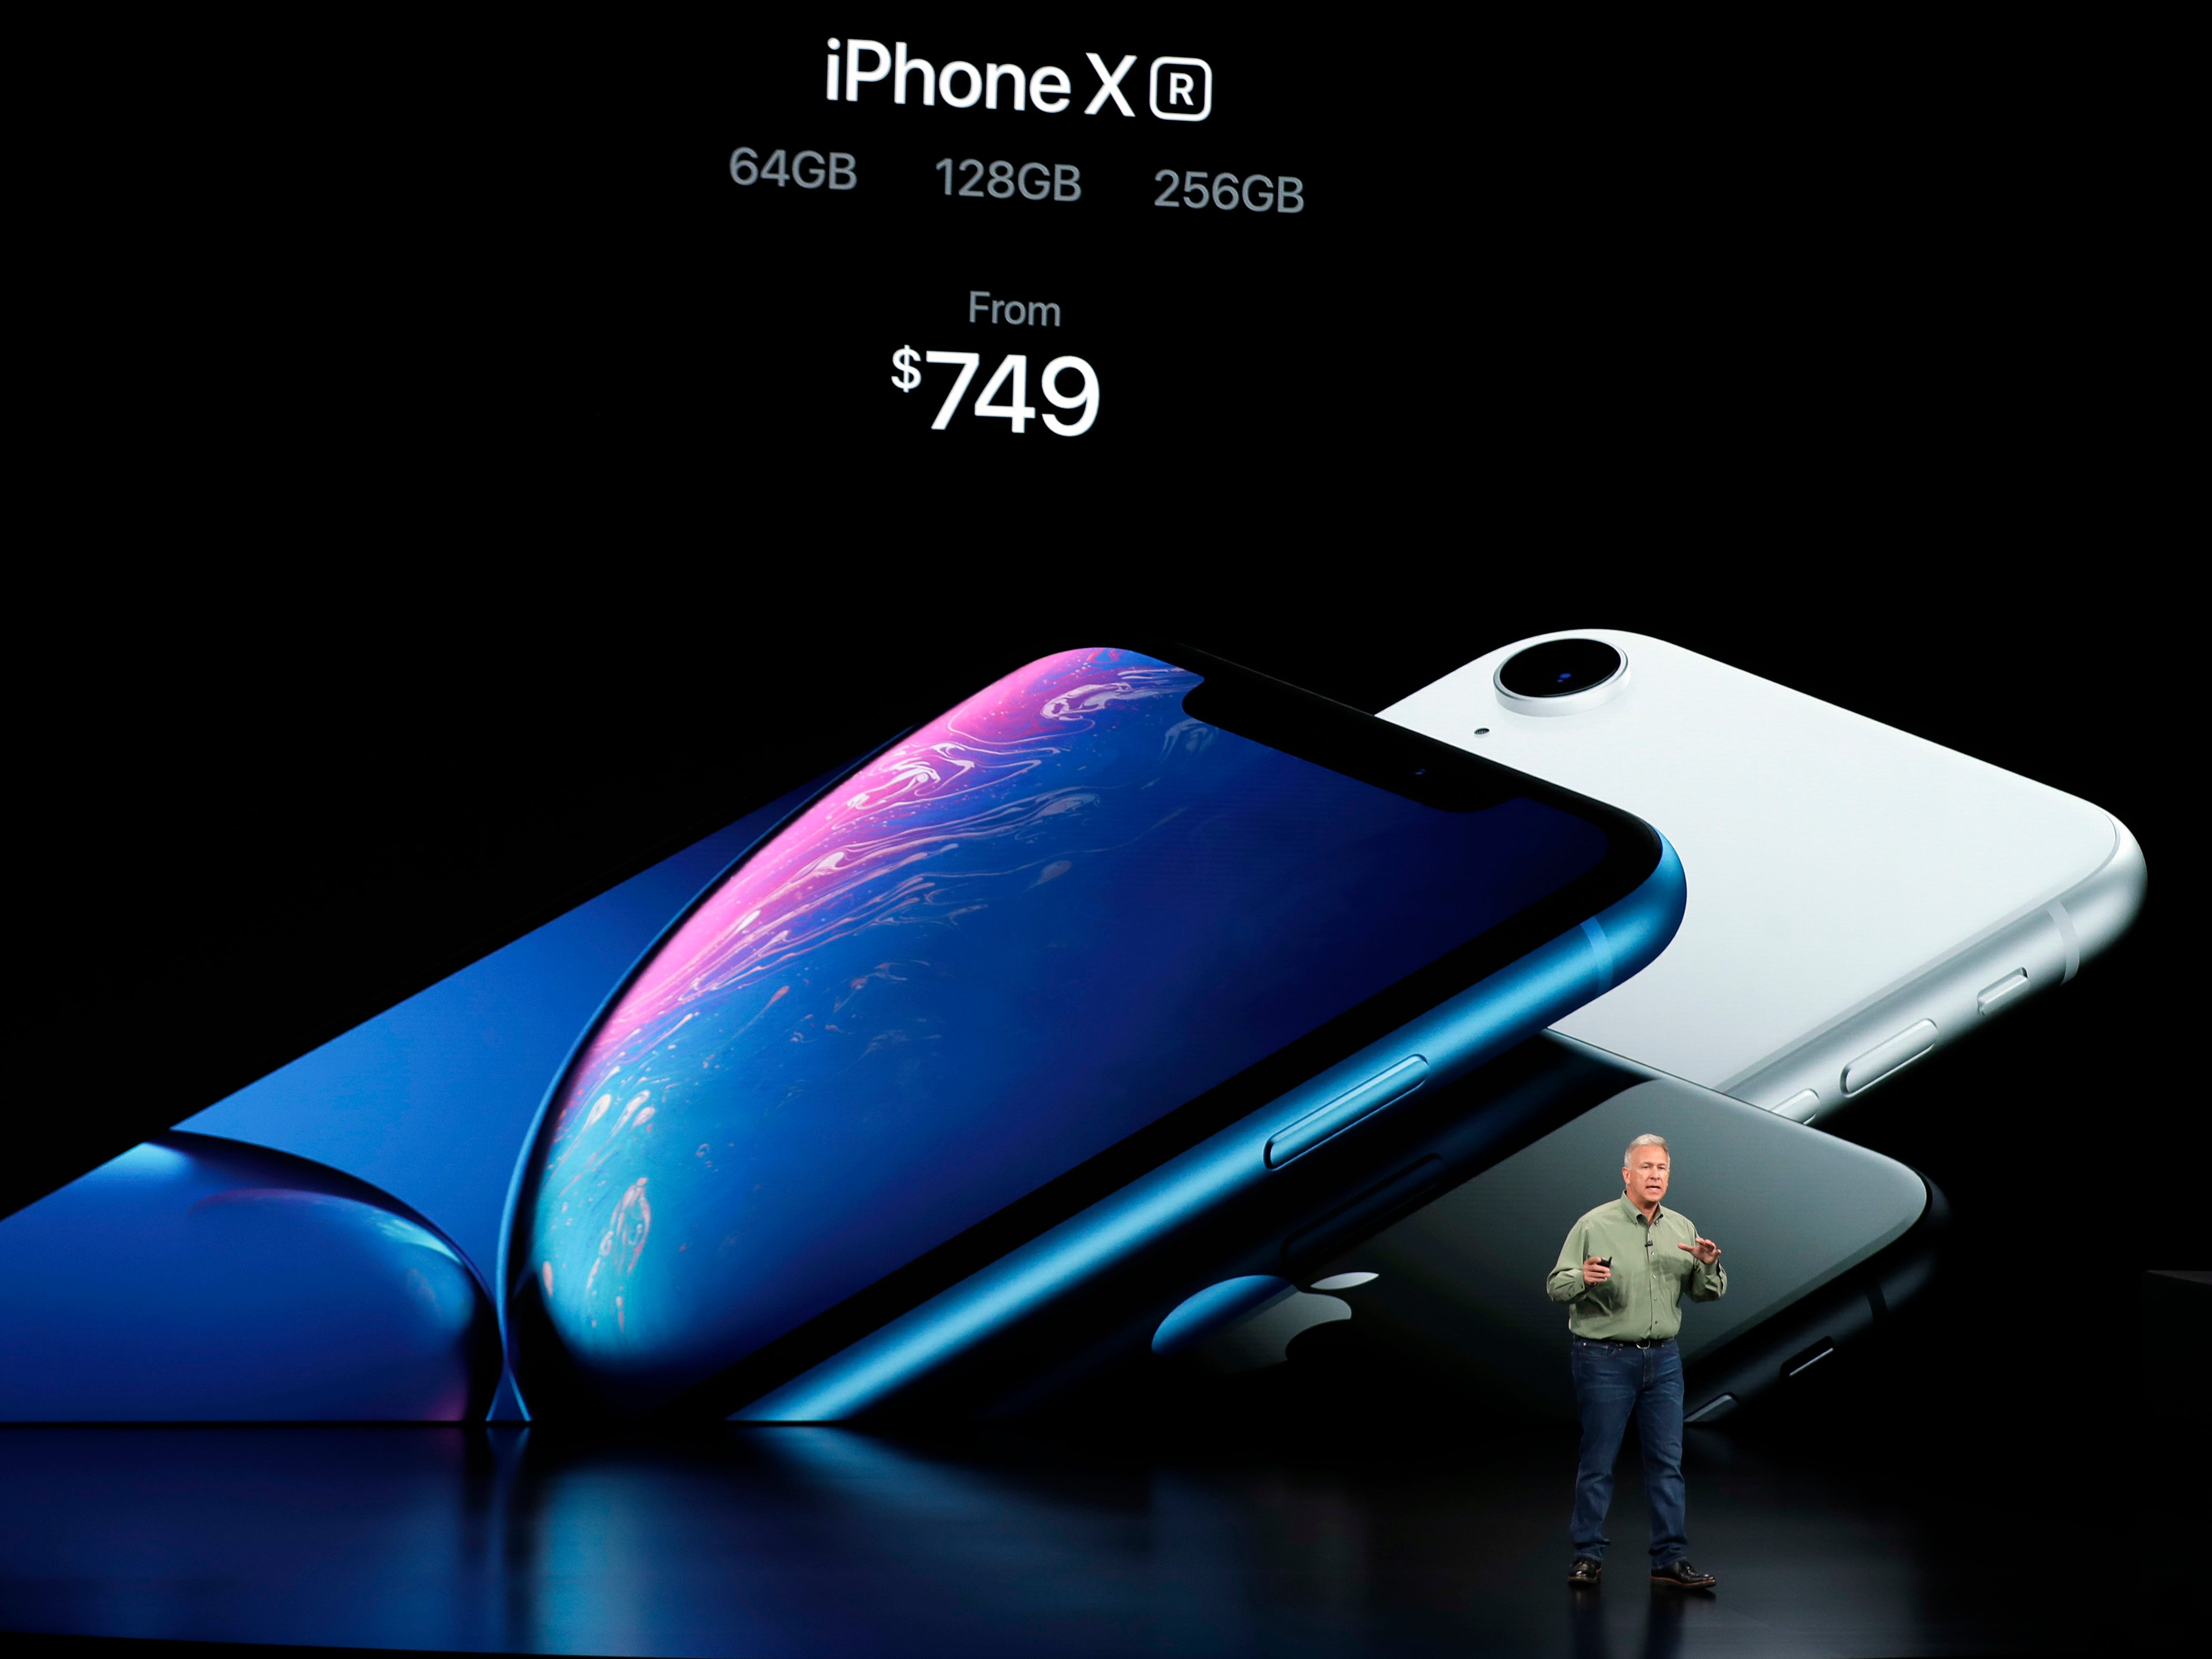 Phil Schiller, Apple's senior vice president of worldwide marketing, speaks about the new Apple iPhone XR at the Steve Jobs Theater during an event to announce new Apple products Wednesday, Sept. 12, 2018, in Cupertino, Calif.